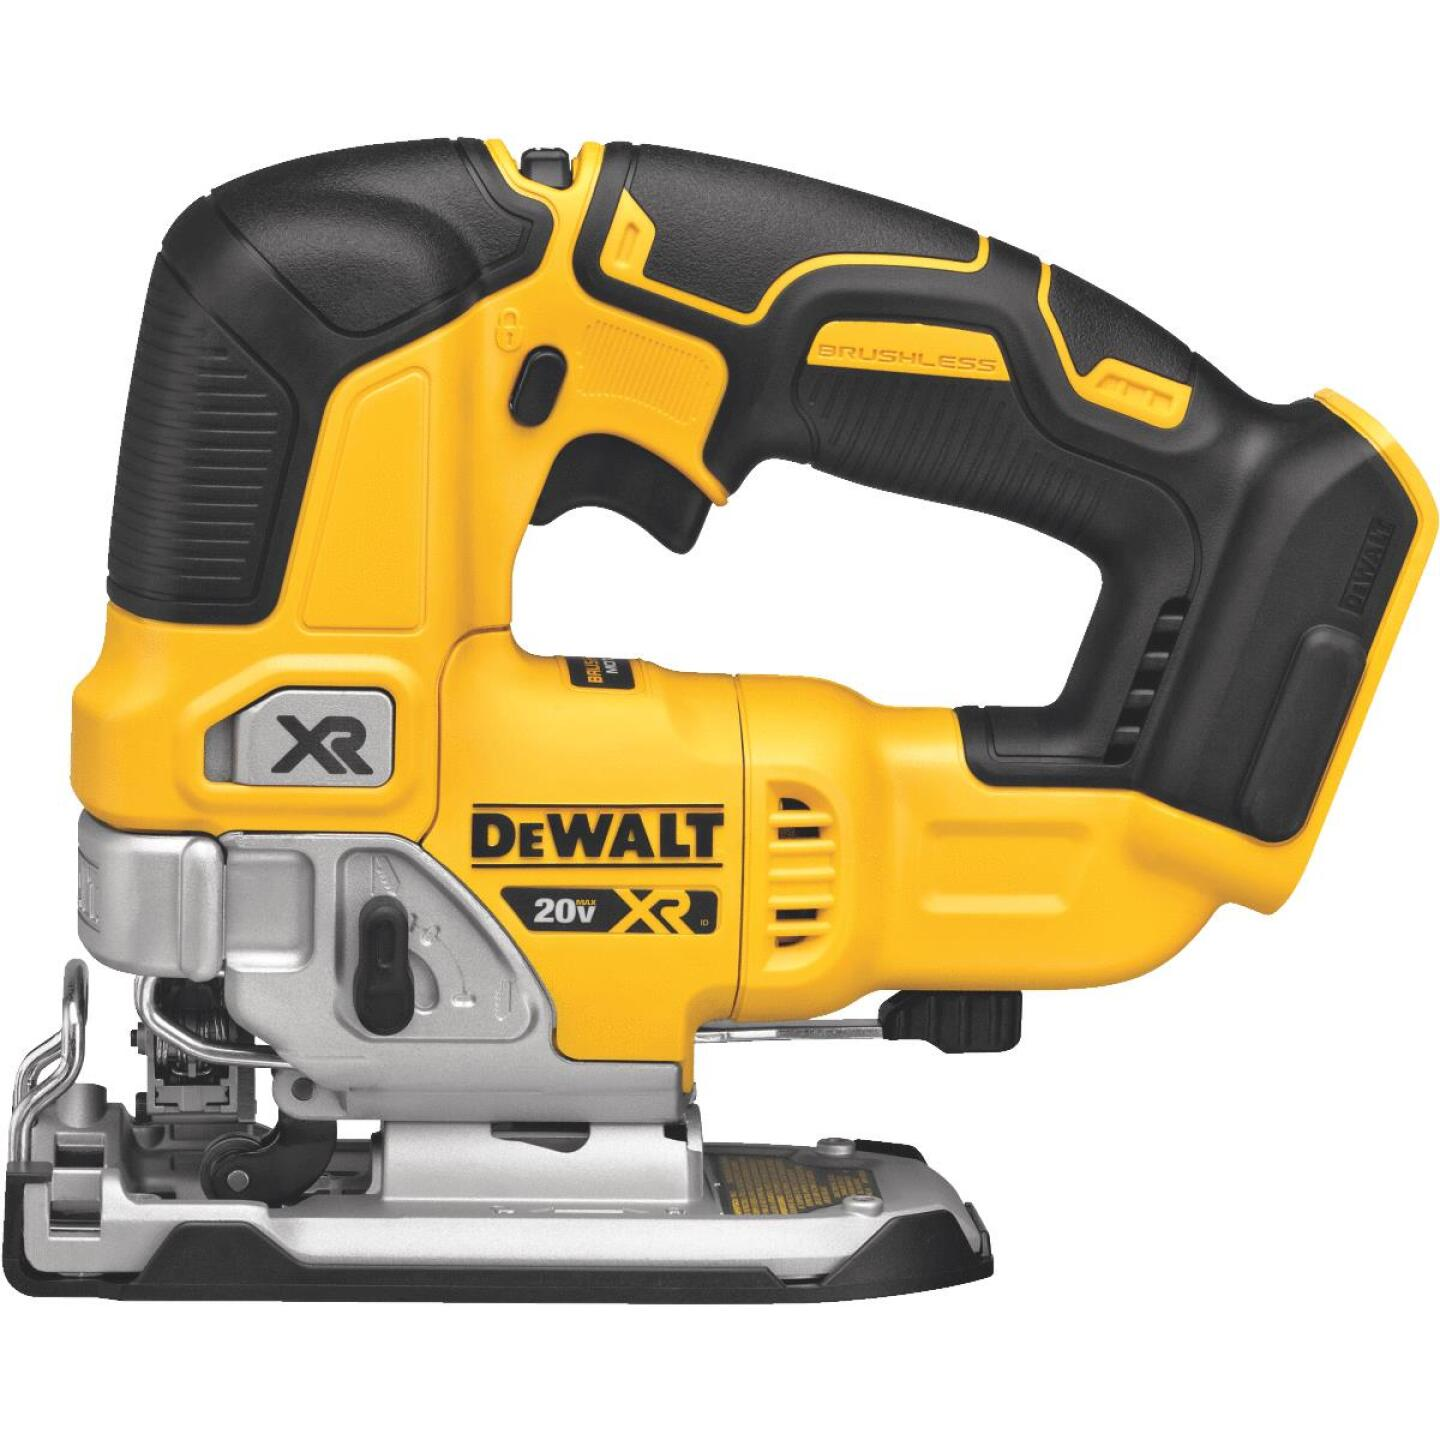 DeWalt 20 Volt MAX XR Lithium-Ion Cordless Jig Saw (Bare Tool) Image 1